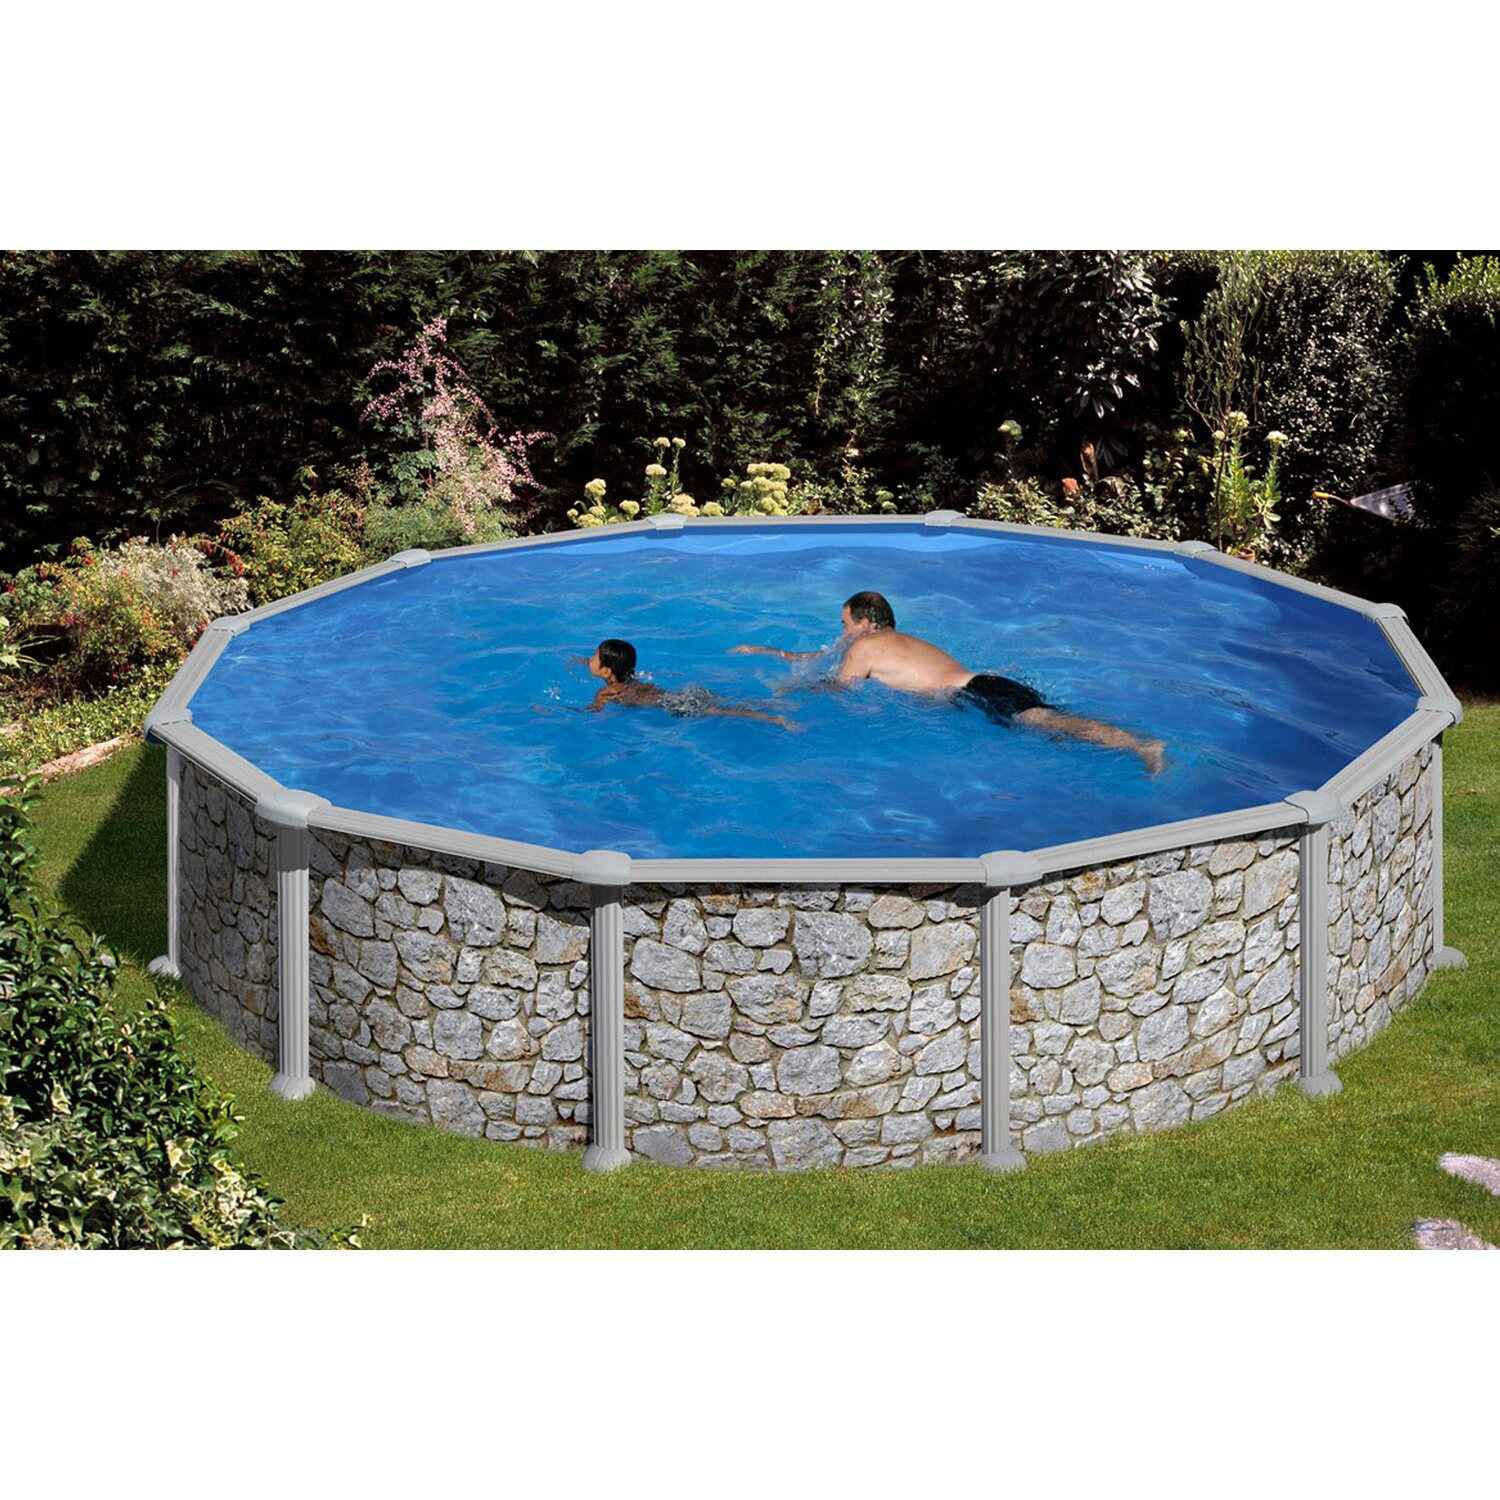 Summer fun stahlwand pool set stein dekor aufstellbecken for Obi pool katalog